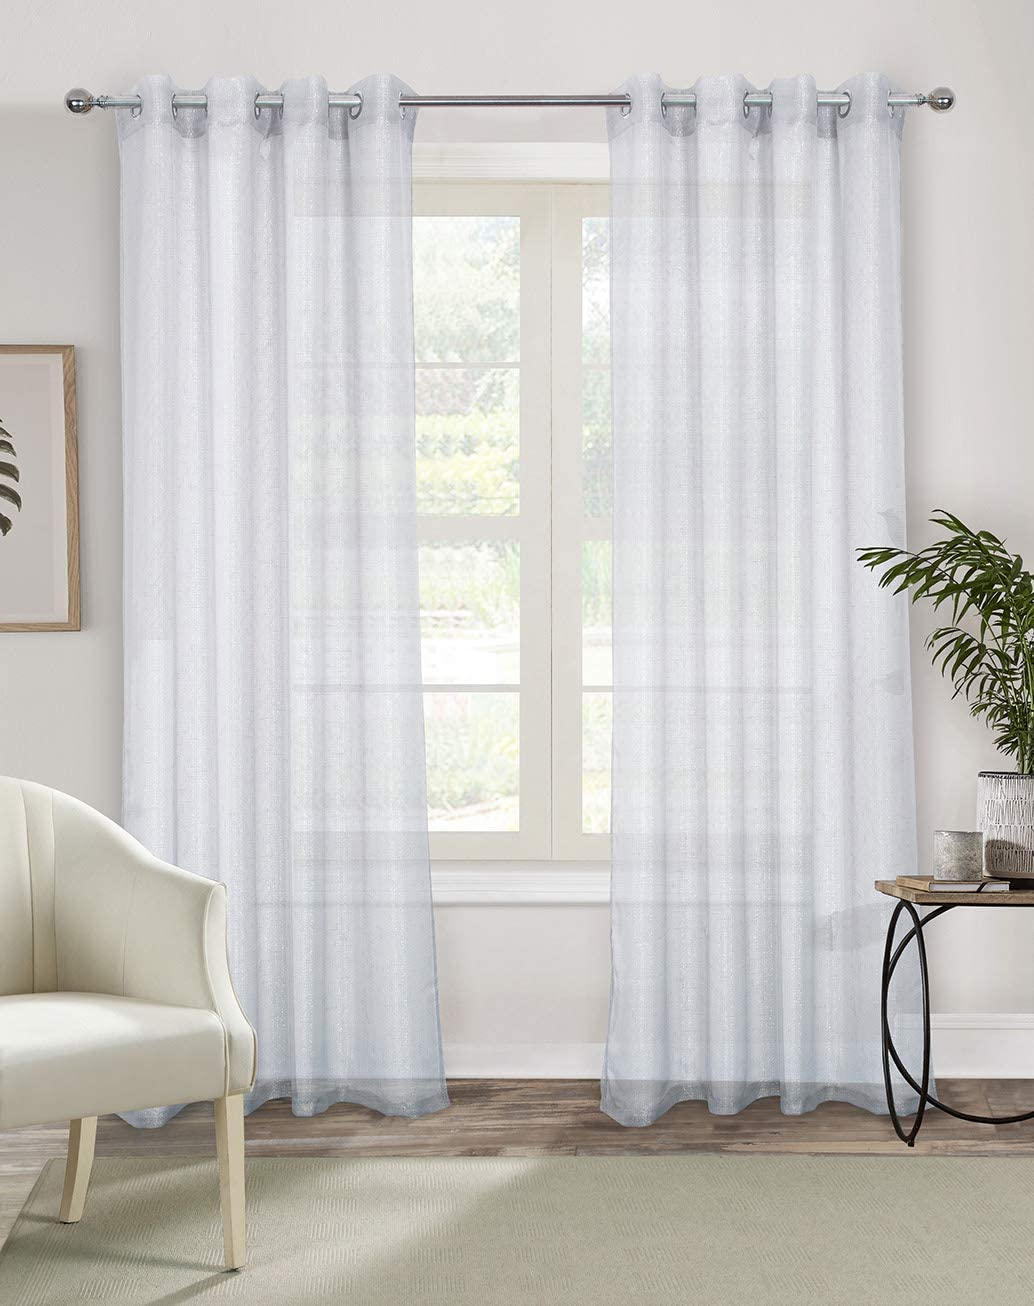 Alexandra Cole White Semi Sheer Curtains 95 Inches Long Light Filtering Curtains for Bedroom Voile Grommet Window Curtains Drapes for Living Room with Gold Wire 2 Panels